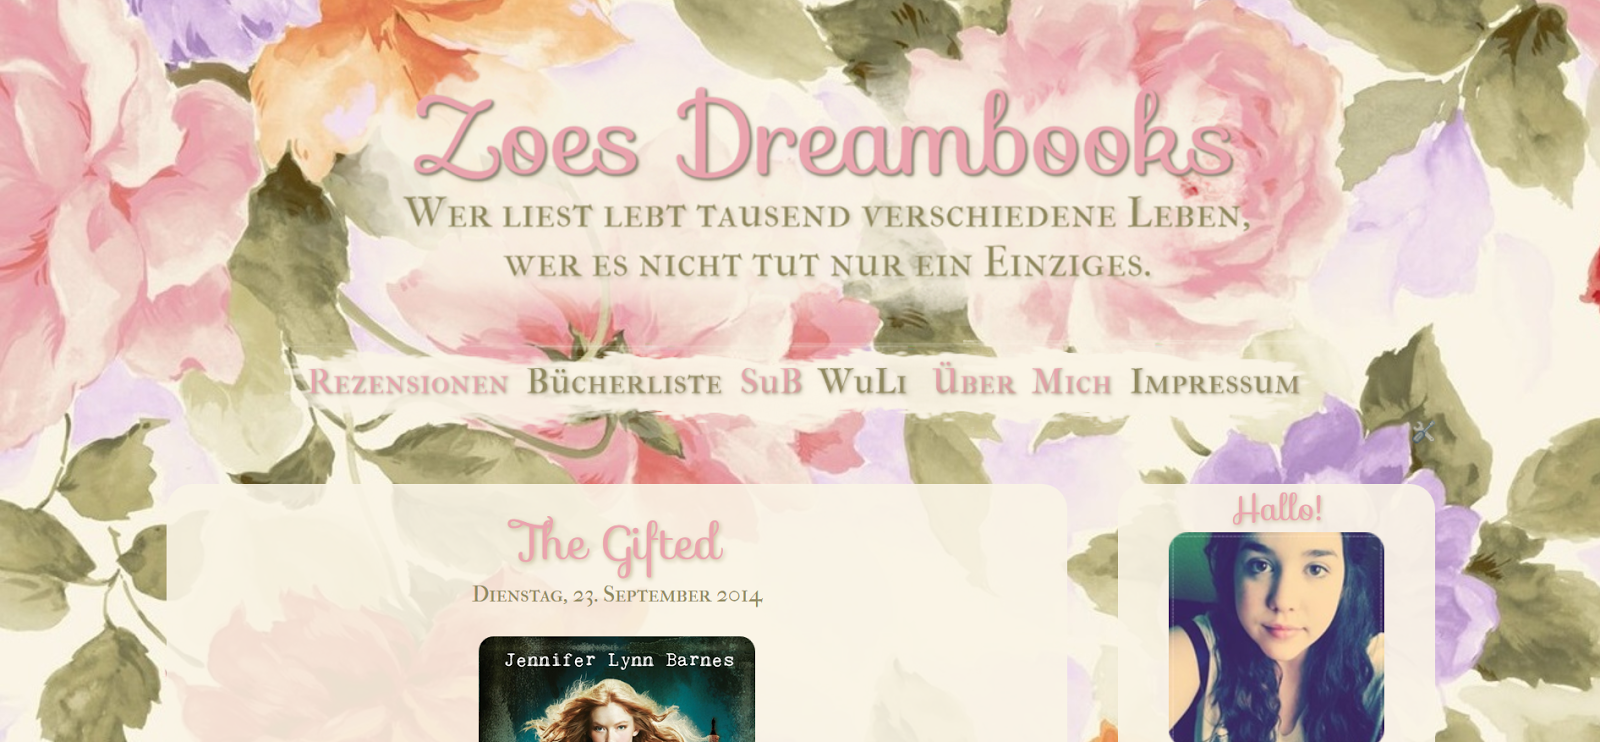 http://zoesdreambooks.blogspot.de/